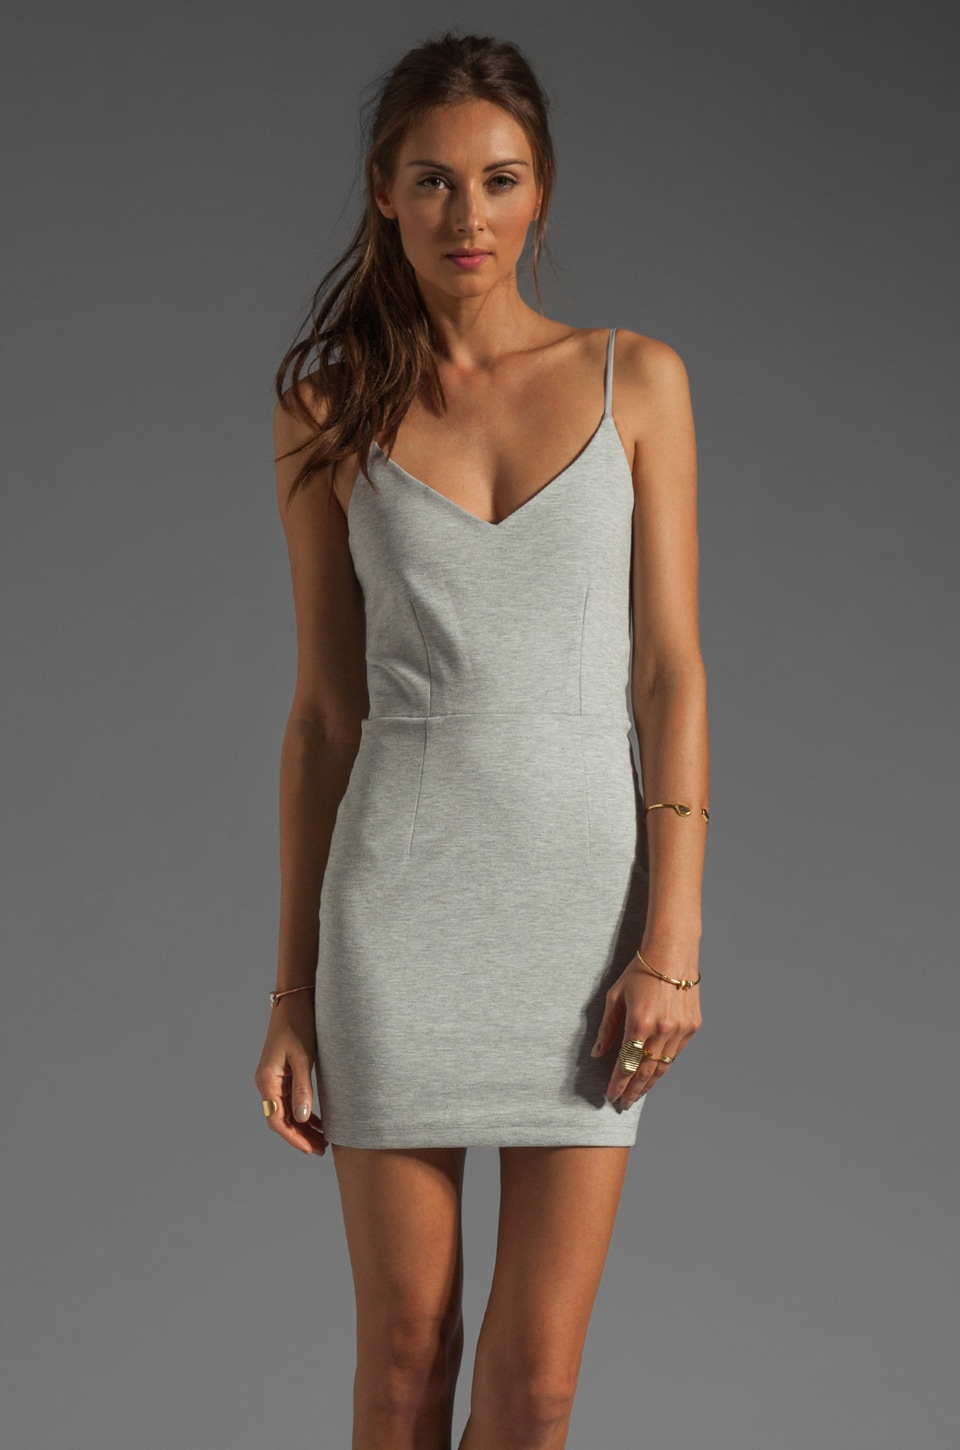 BEC&BRIDGE Seville Mini Dress in Ash